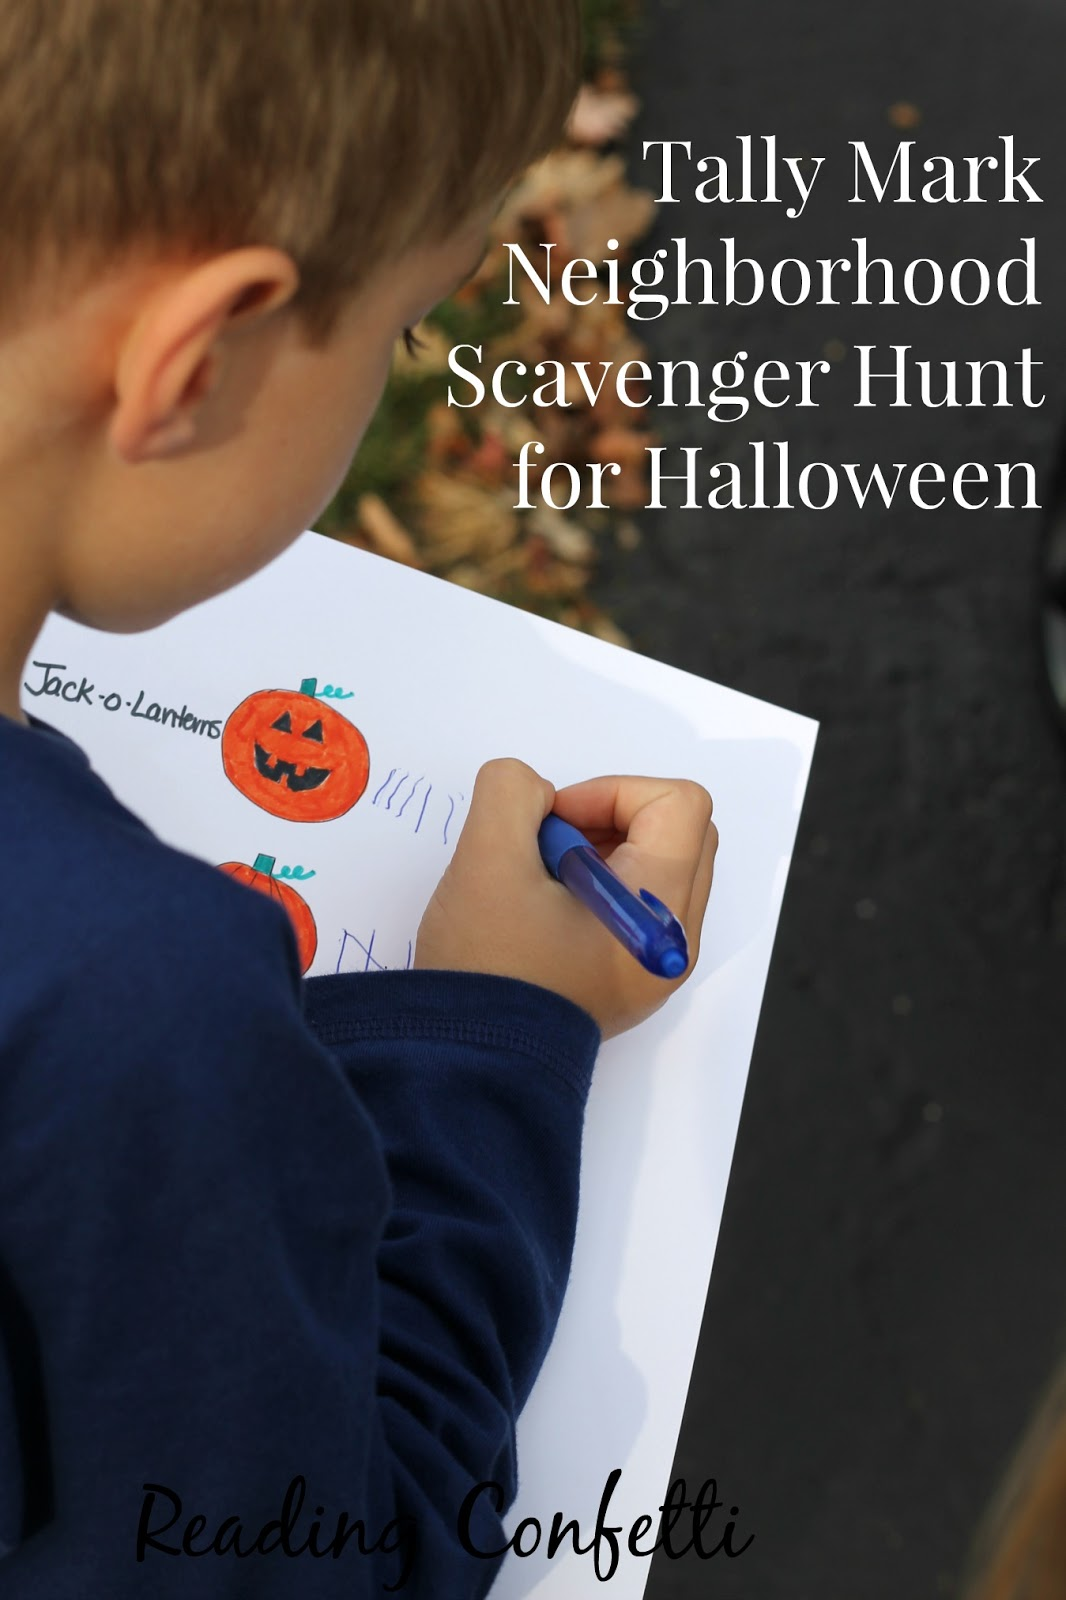 Make a simple tally mark scavenger hunt for your neighborhood this Halloween.